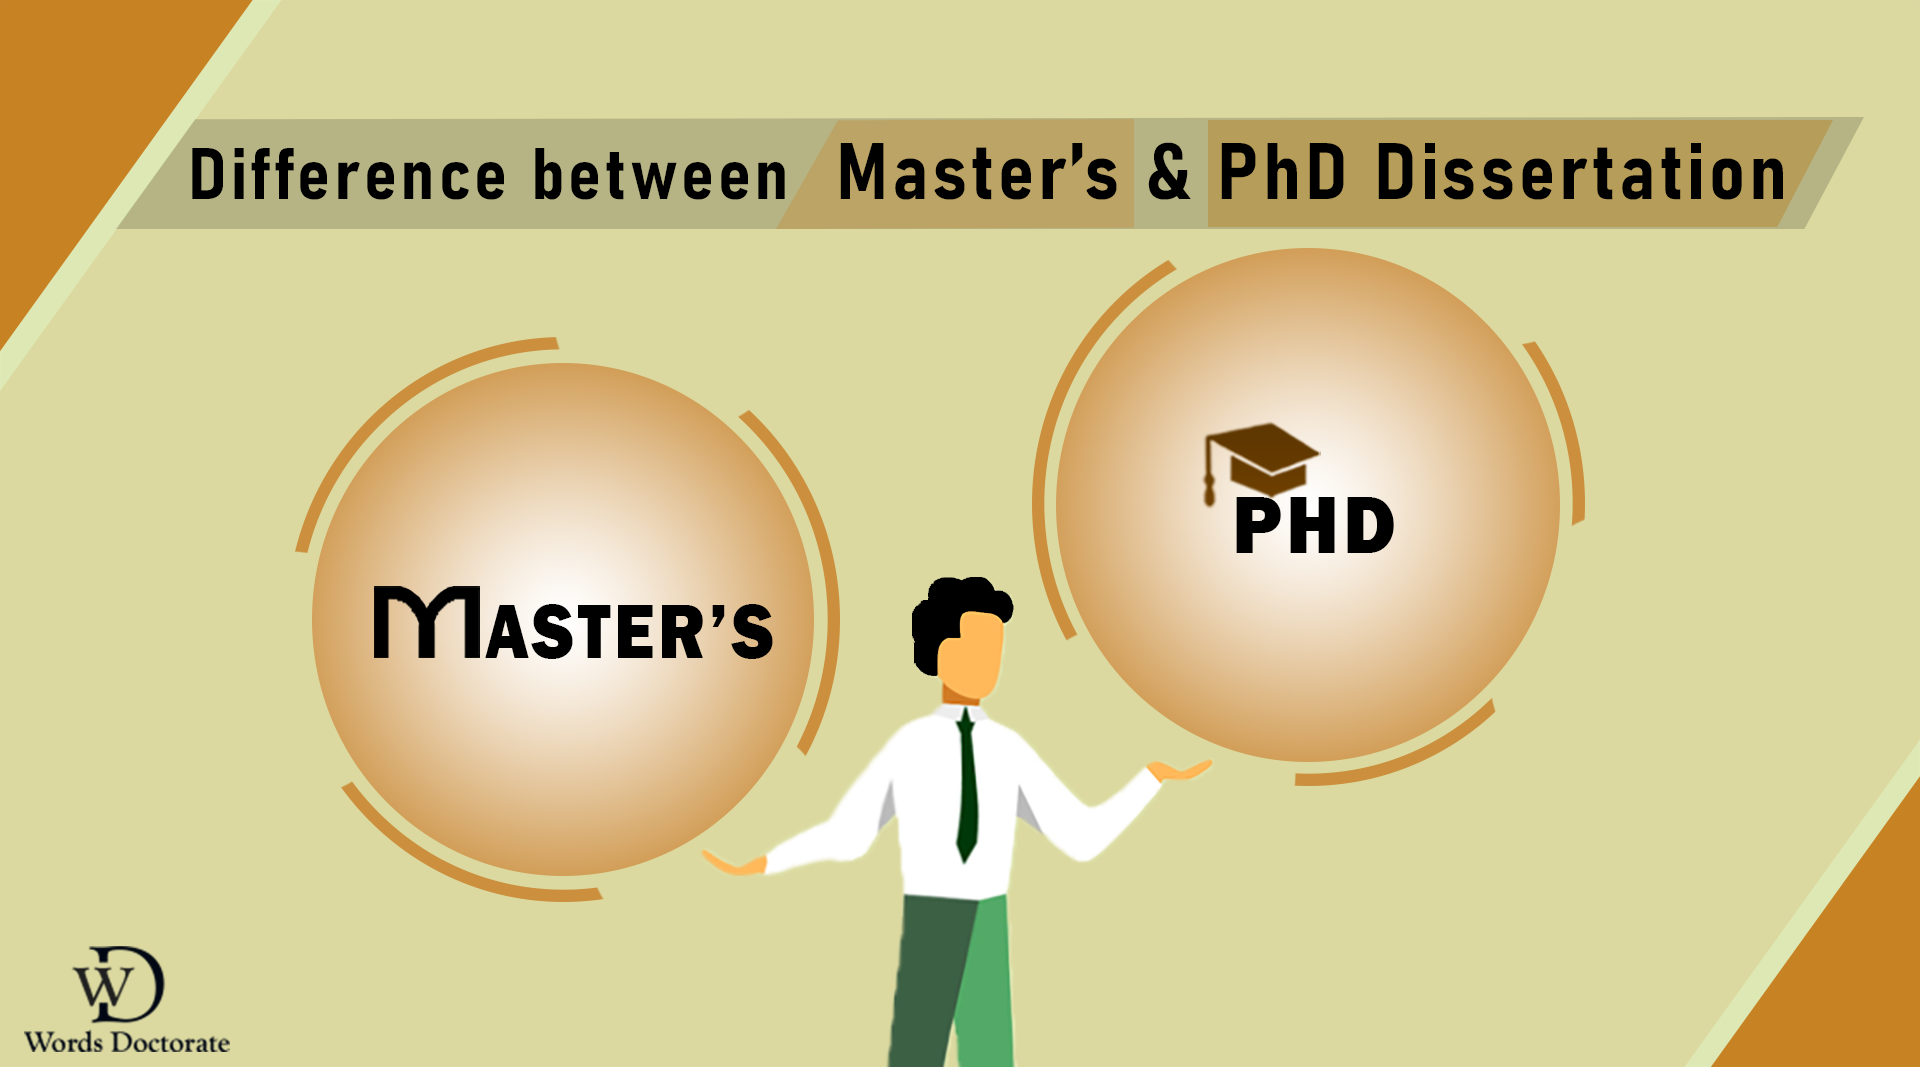 Dissertation vs Thesis: The Differences that Matter